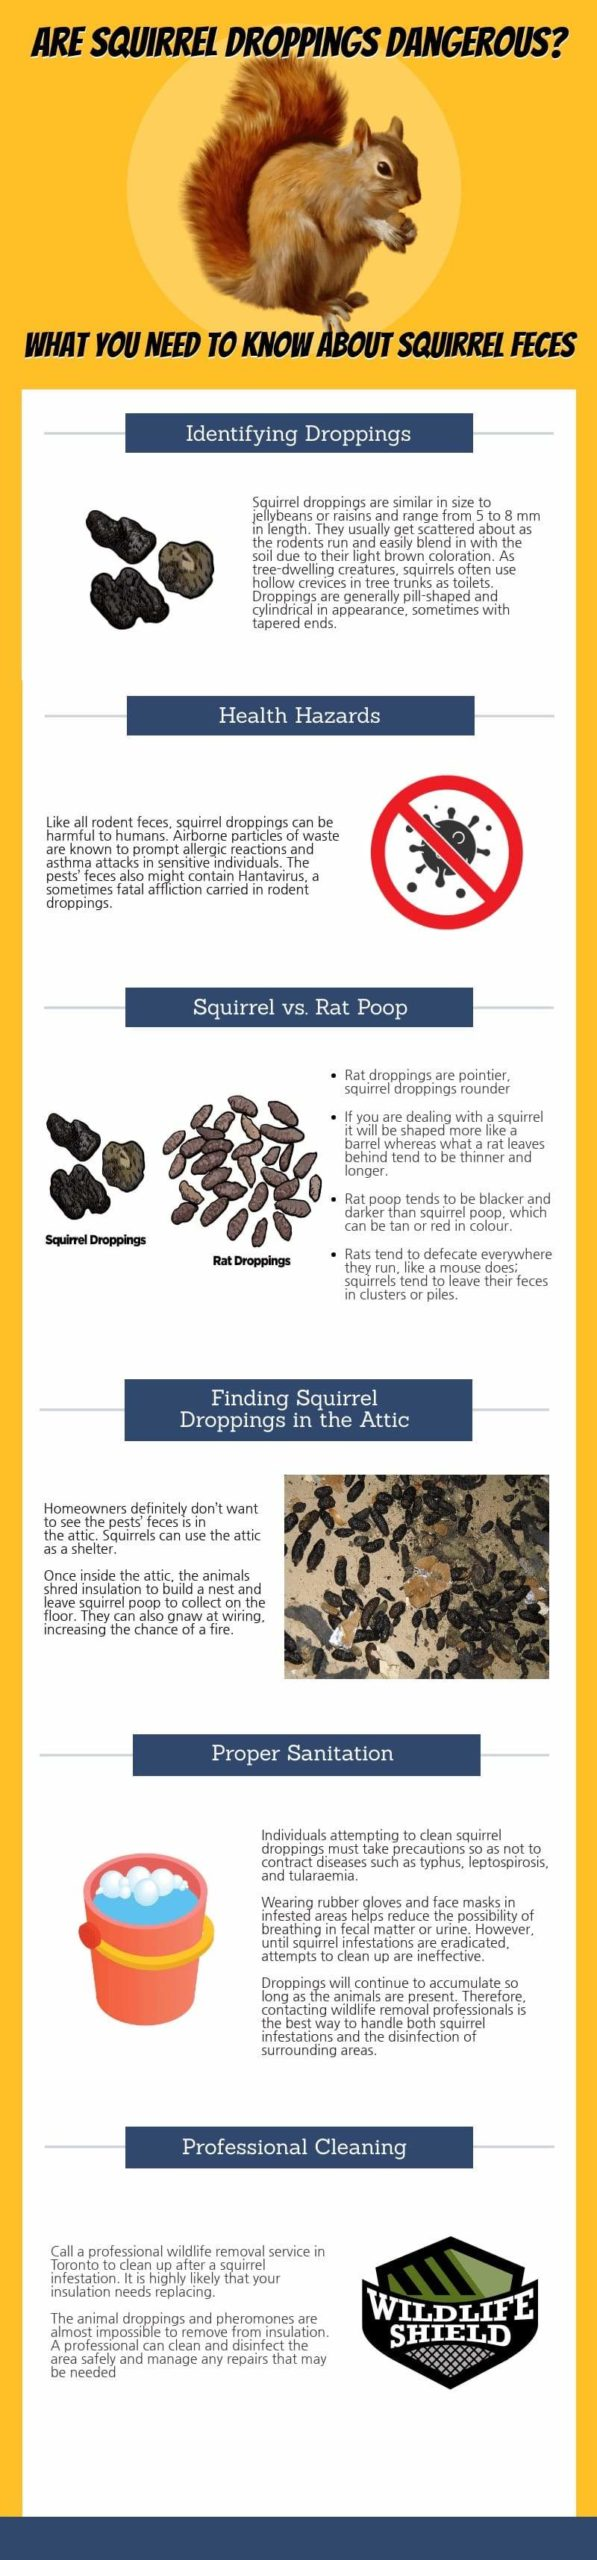 Are-Squirrel-Droppings-Dangerous